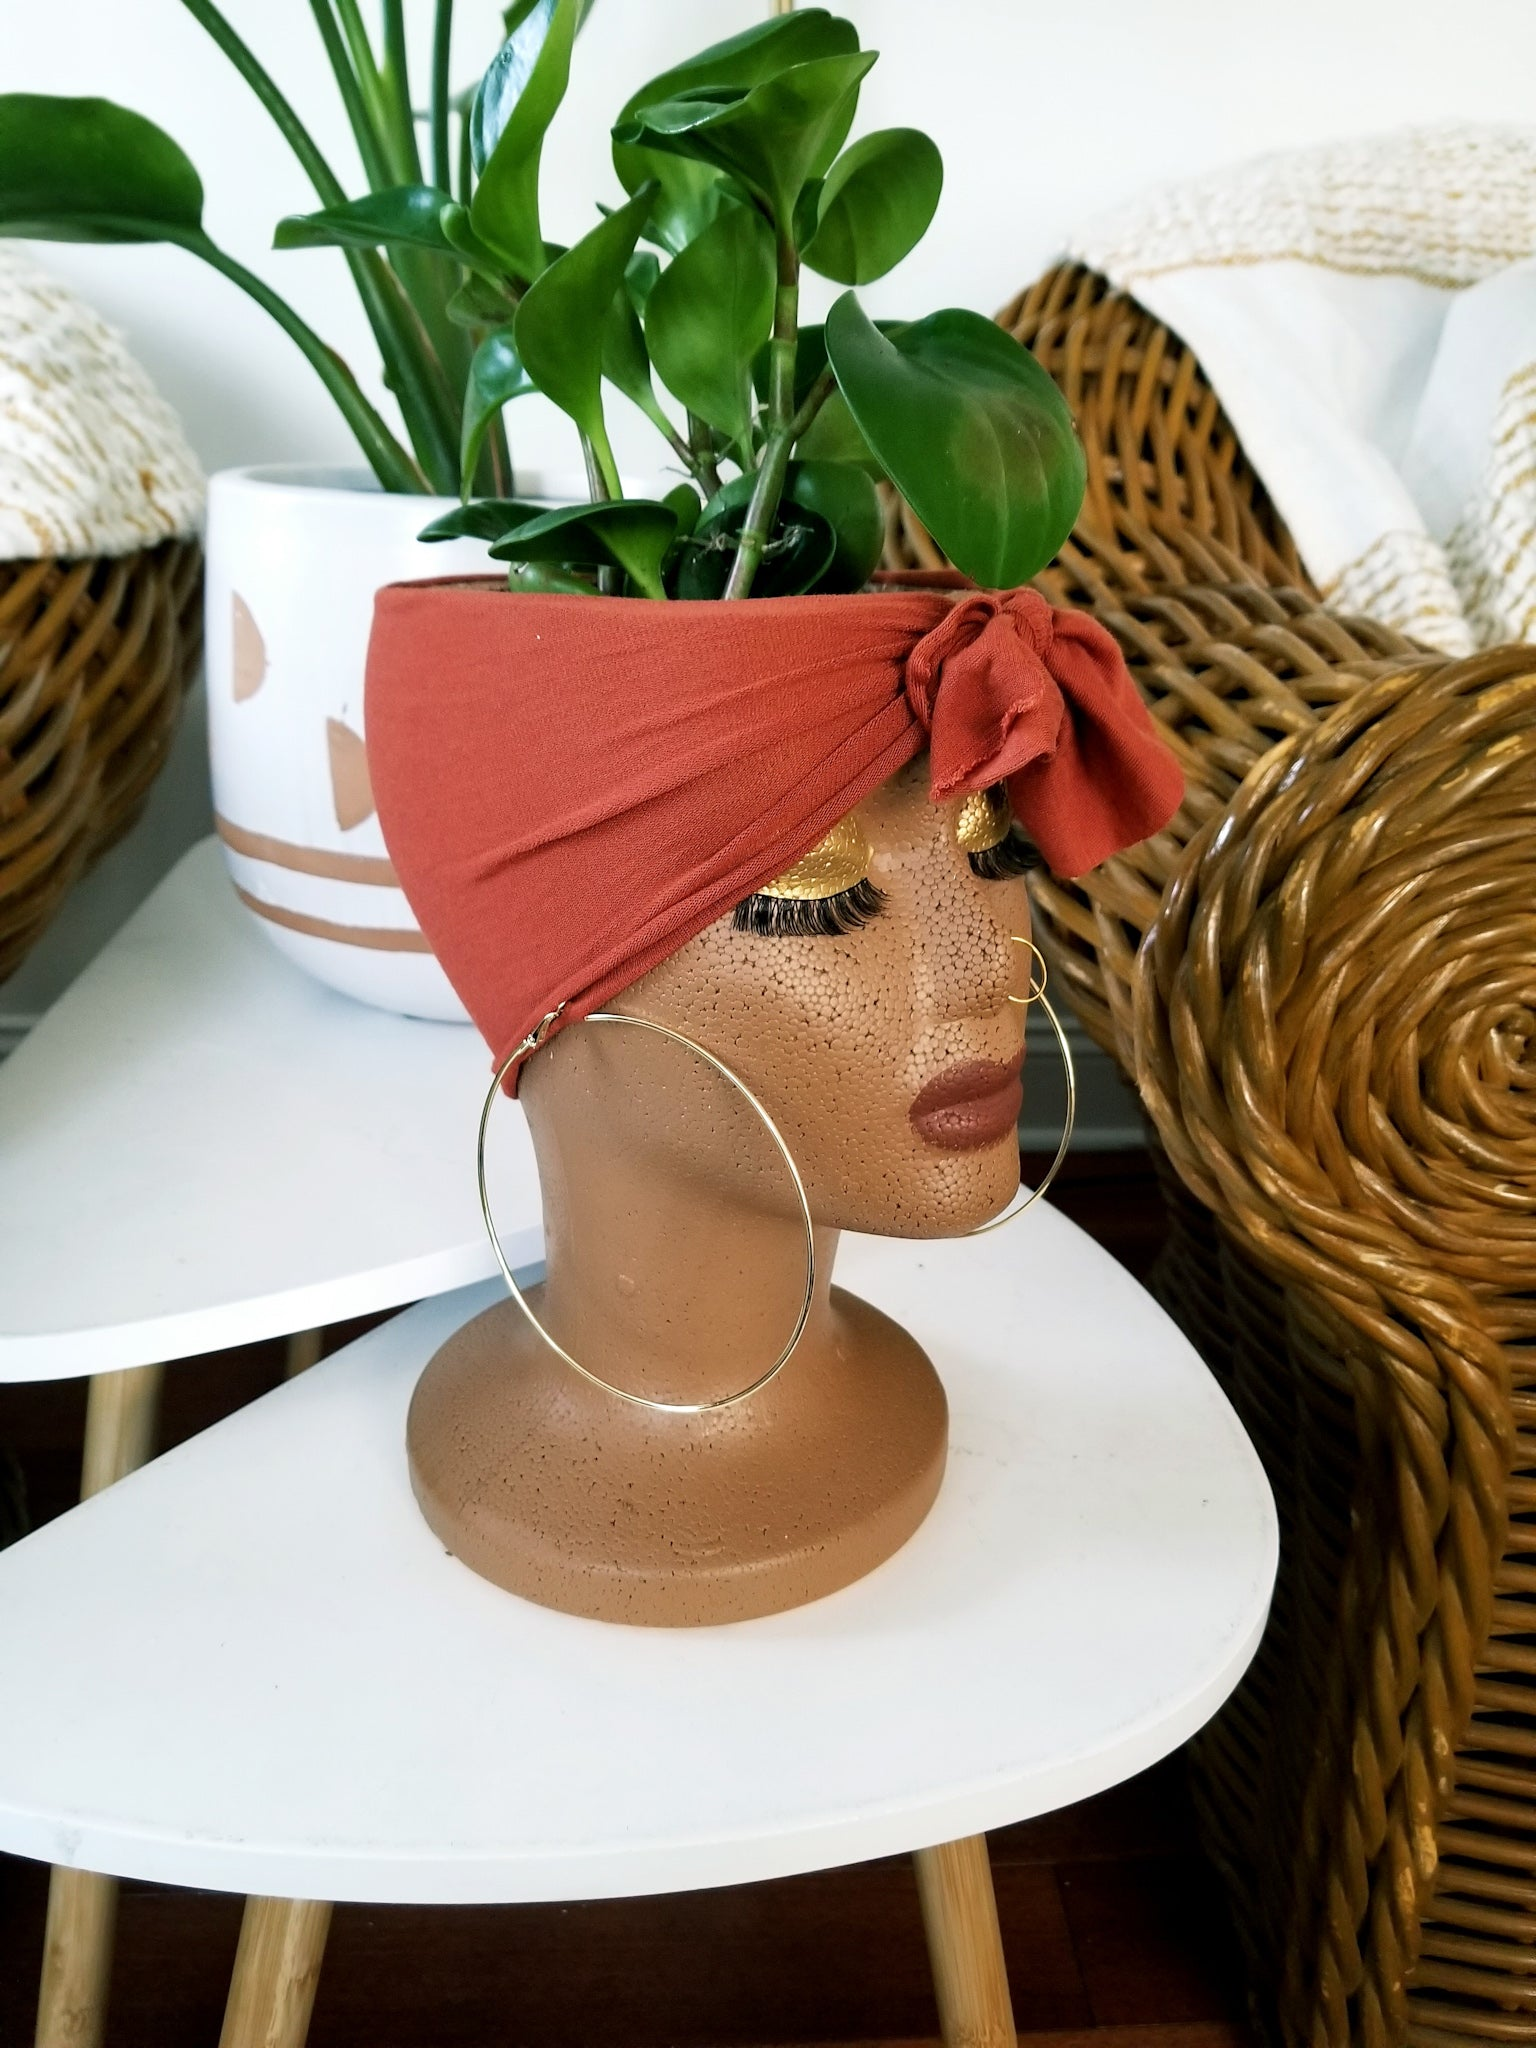 Ceclia- Grow Girl plant pot holder Paprika Scarf